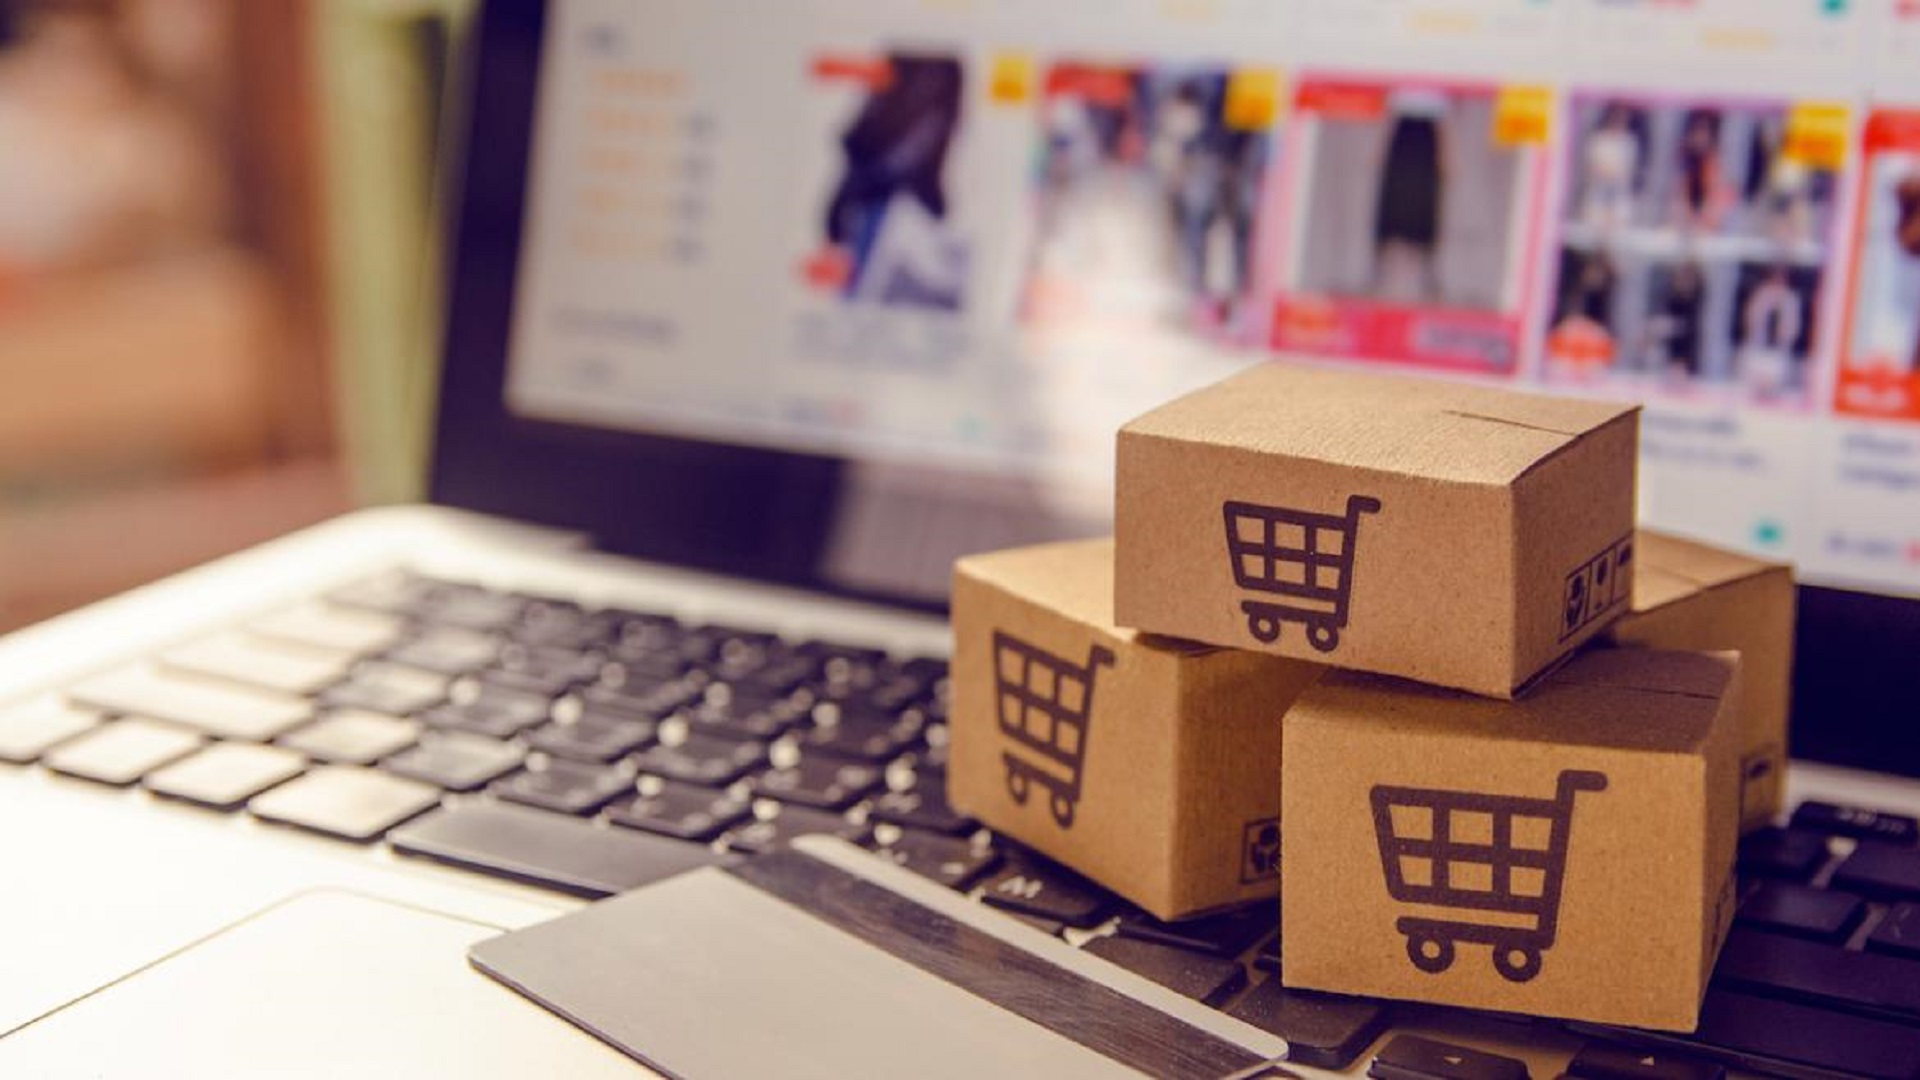 Large-Scale Retail: the future lies between online shopping and new processes